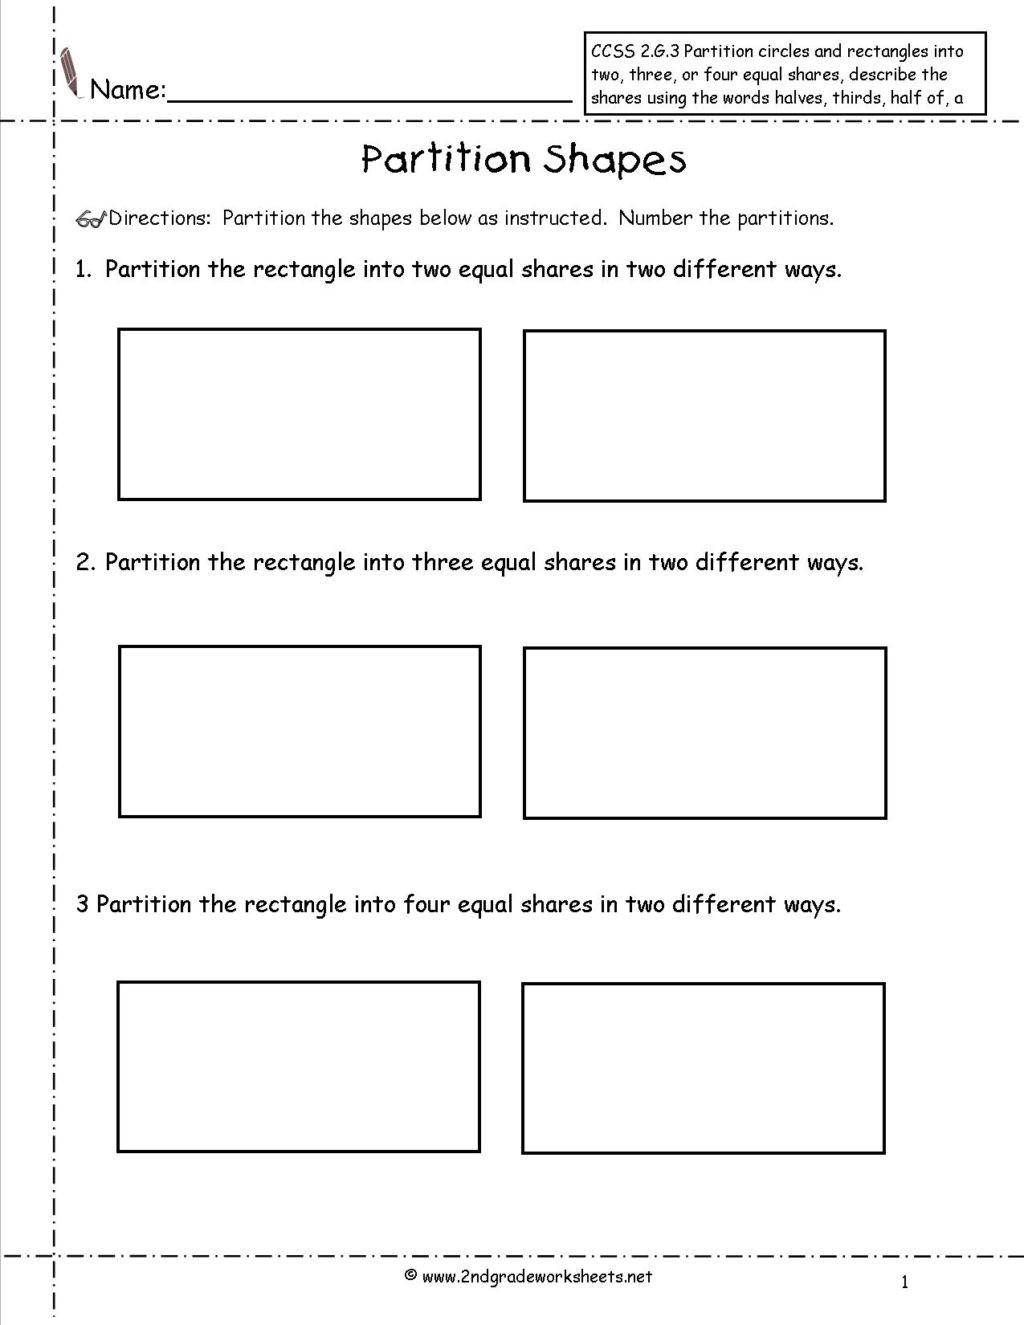 Geometric Shapes Worksheet 2nd Grade Worksheet 2nd Grade Geometry Worksheets Ccss G Partition